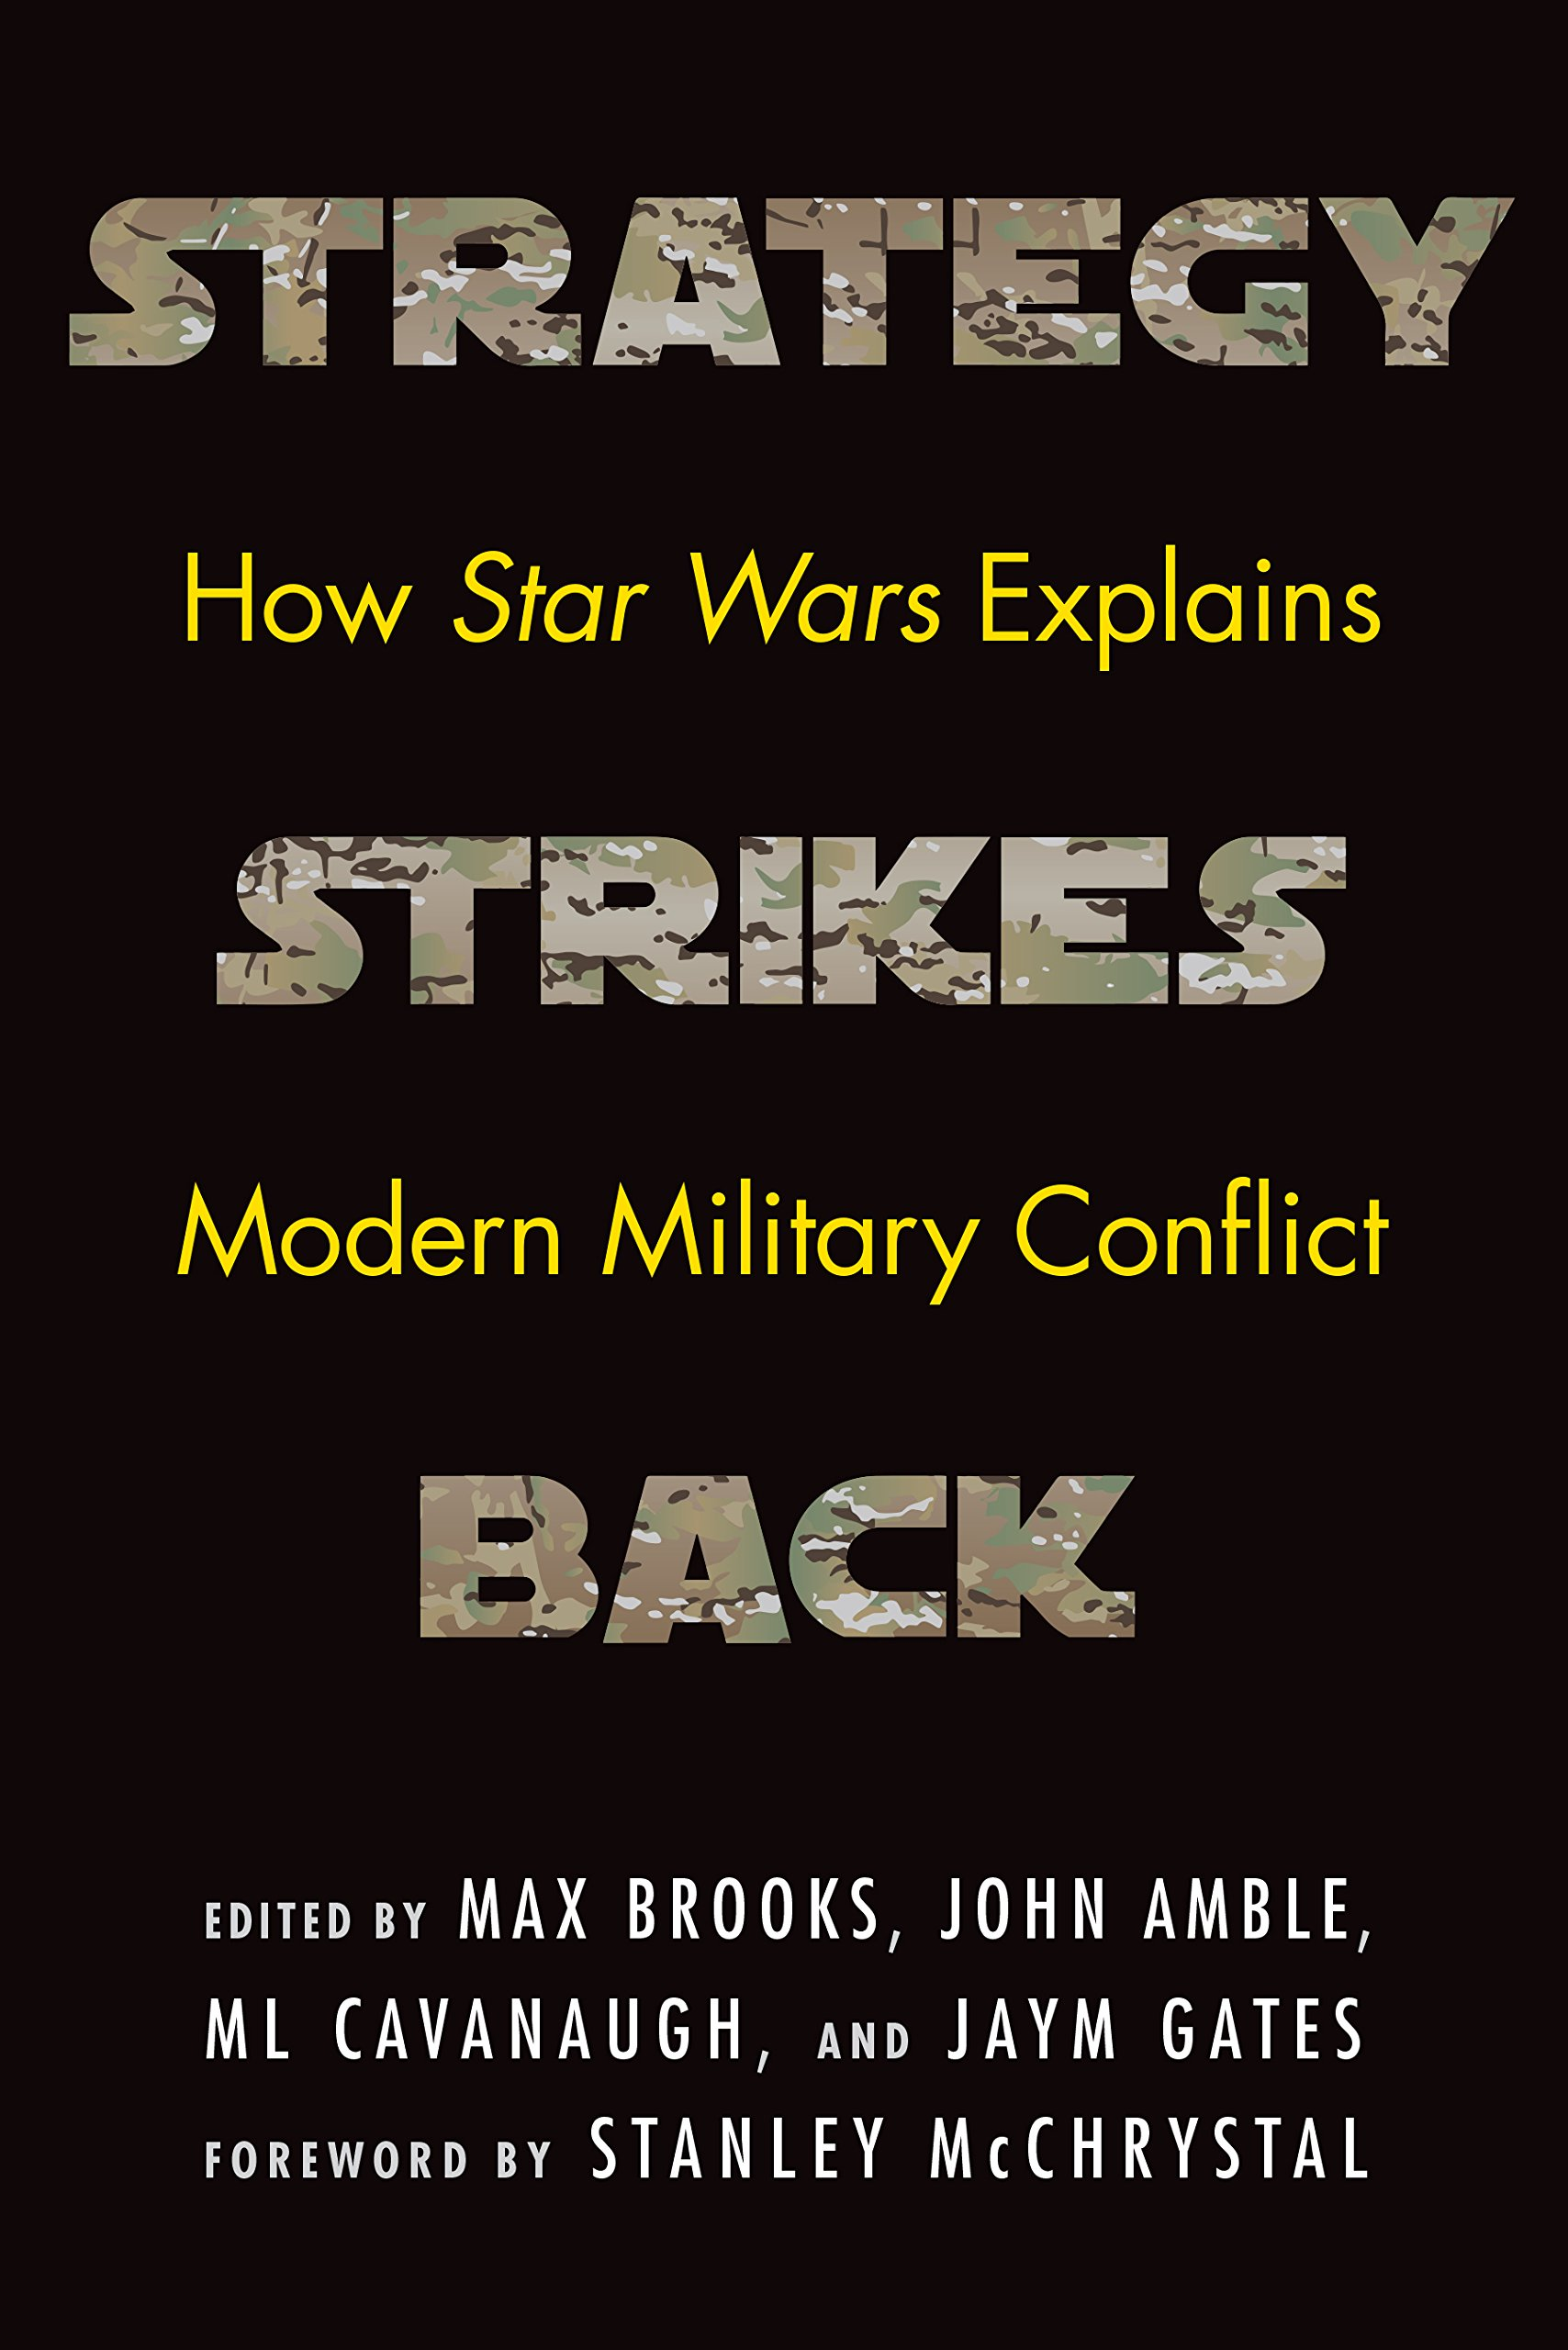 Star Wars, Cyclical History, and Implications for Strategy